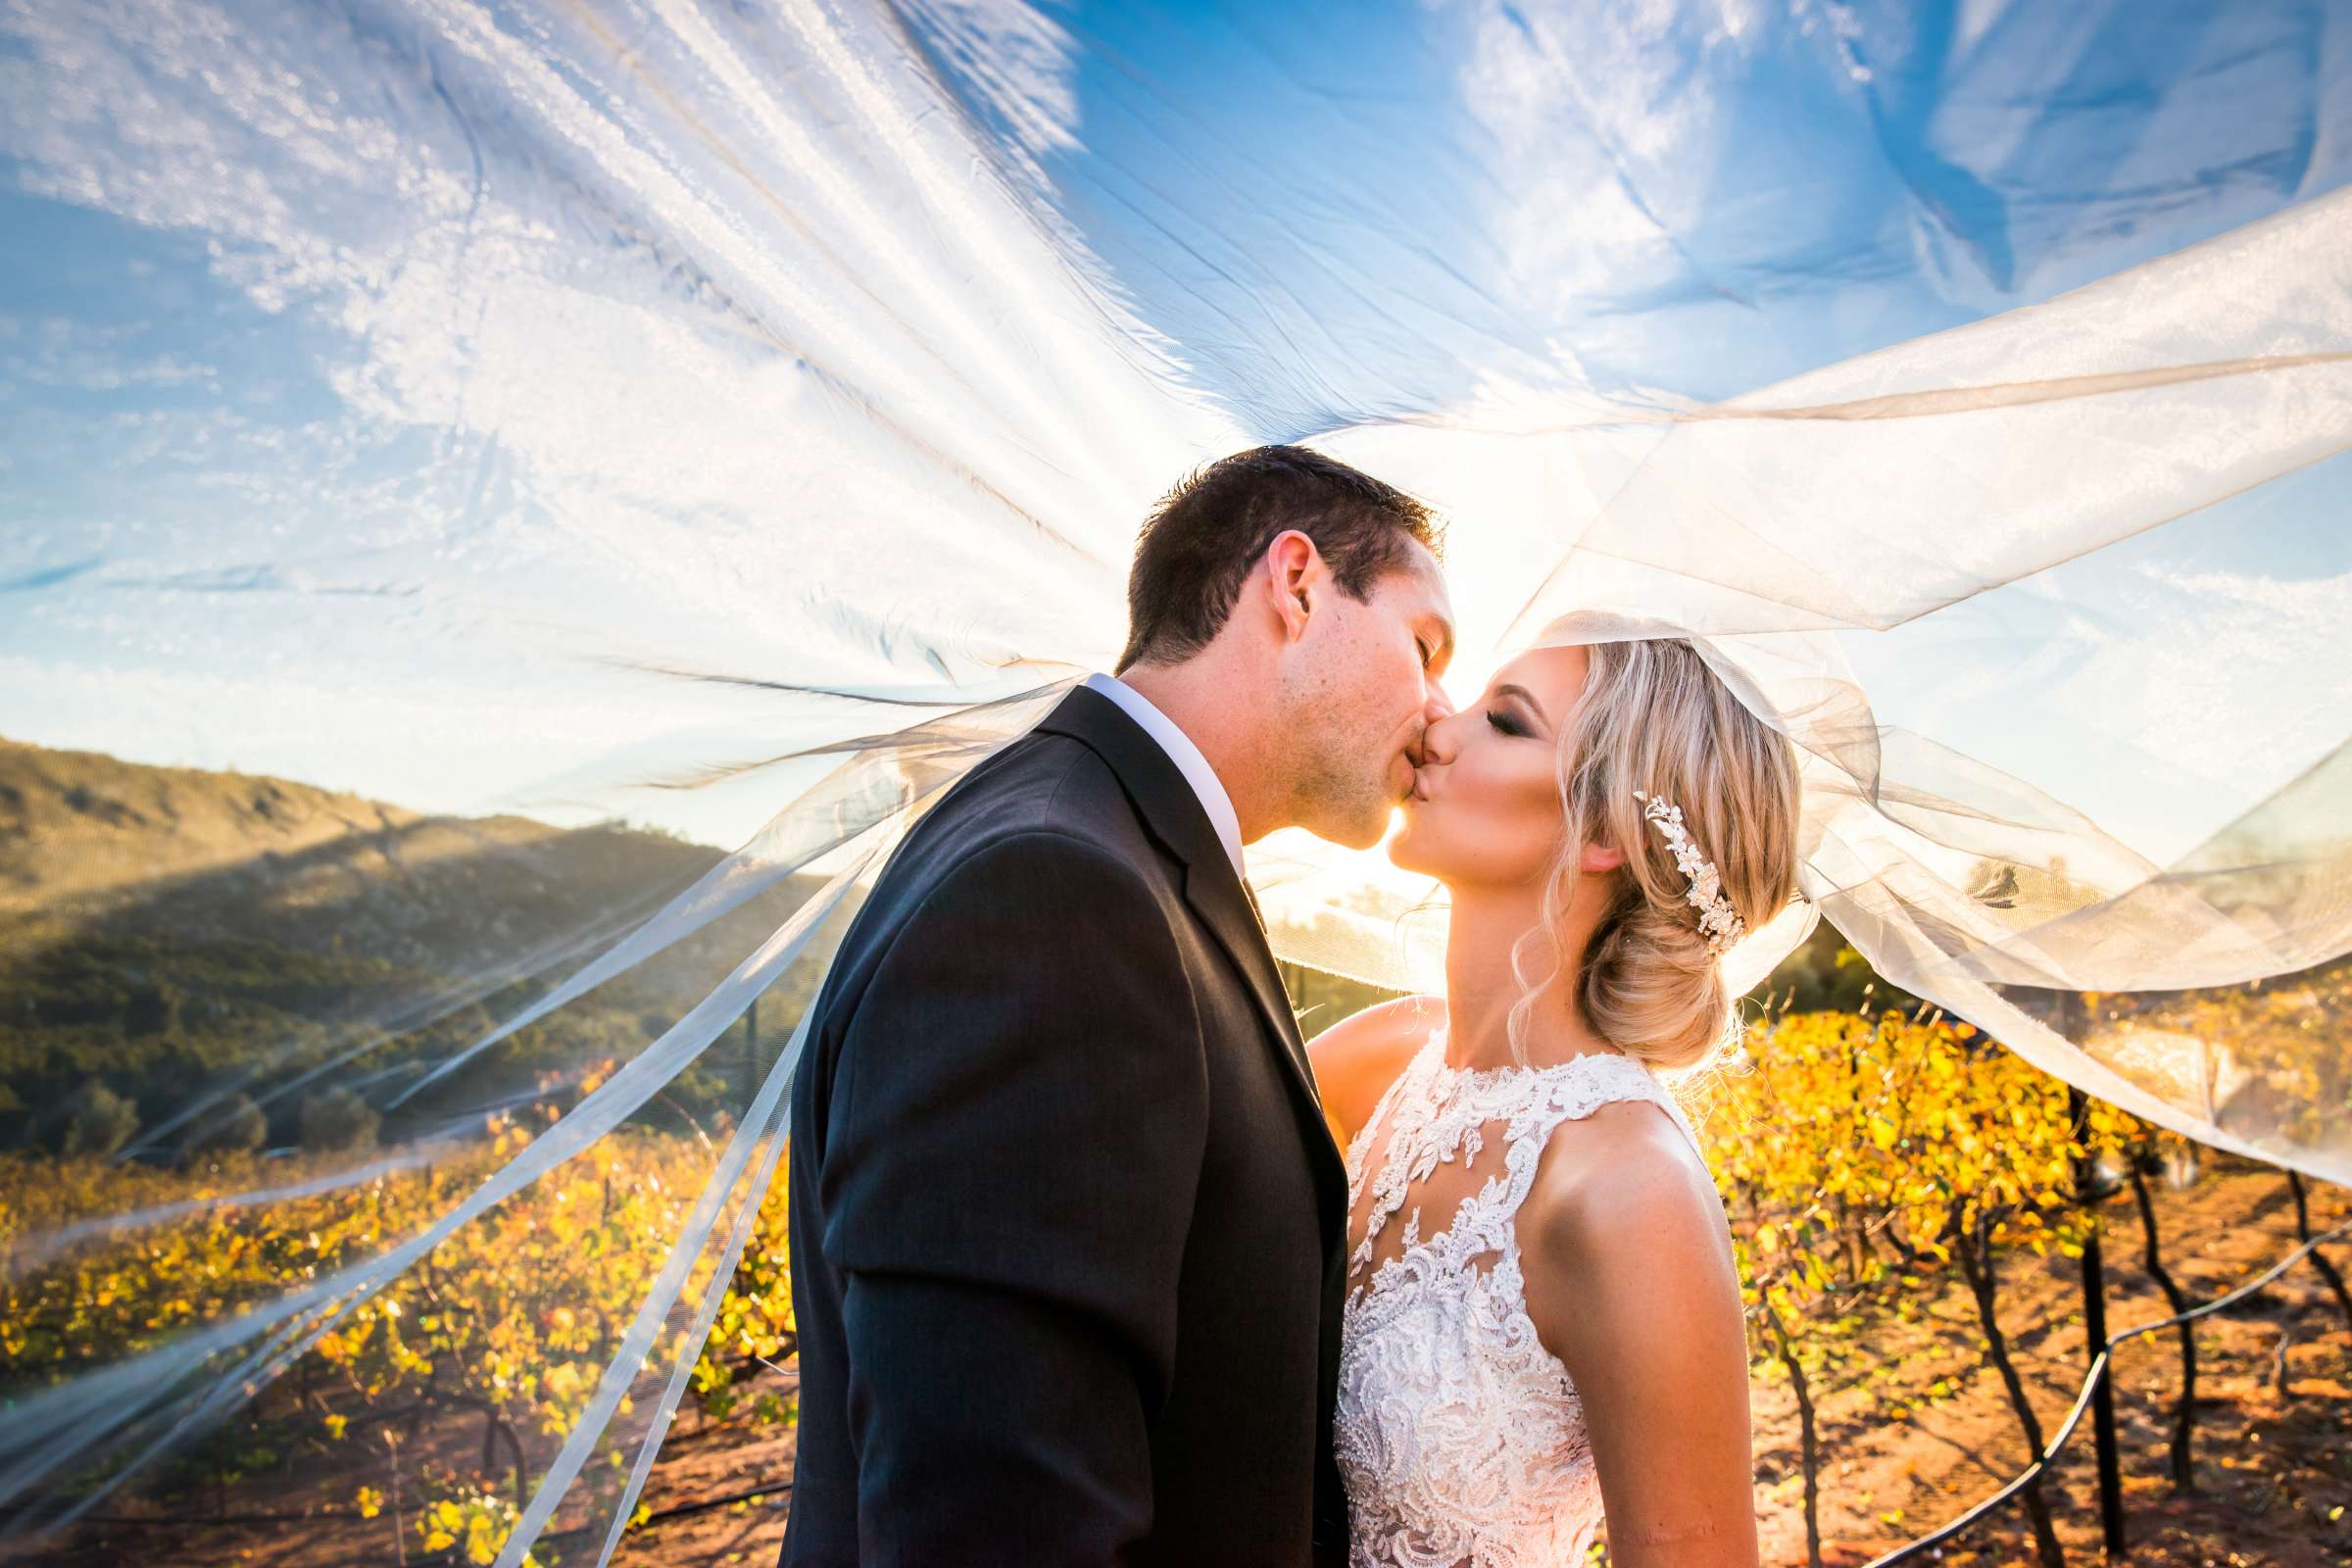 Photographers Favorite at Cordiano Winery Wedding coordinated by Sisti & Co, Sara and Kyle Wedding Photo #1 by True Photography